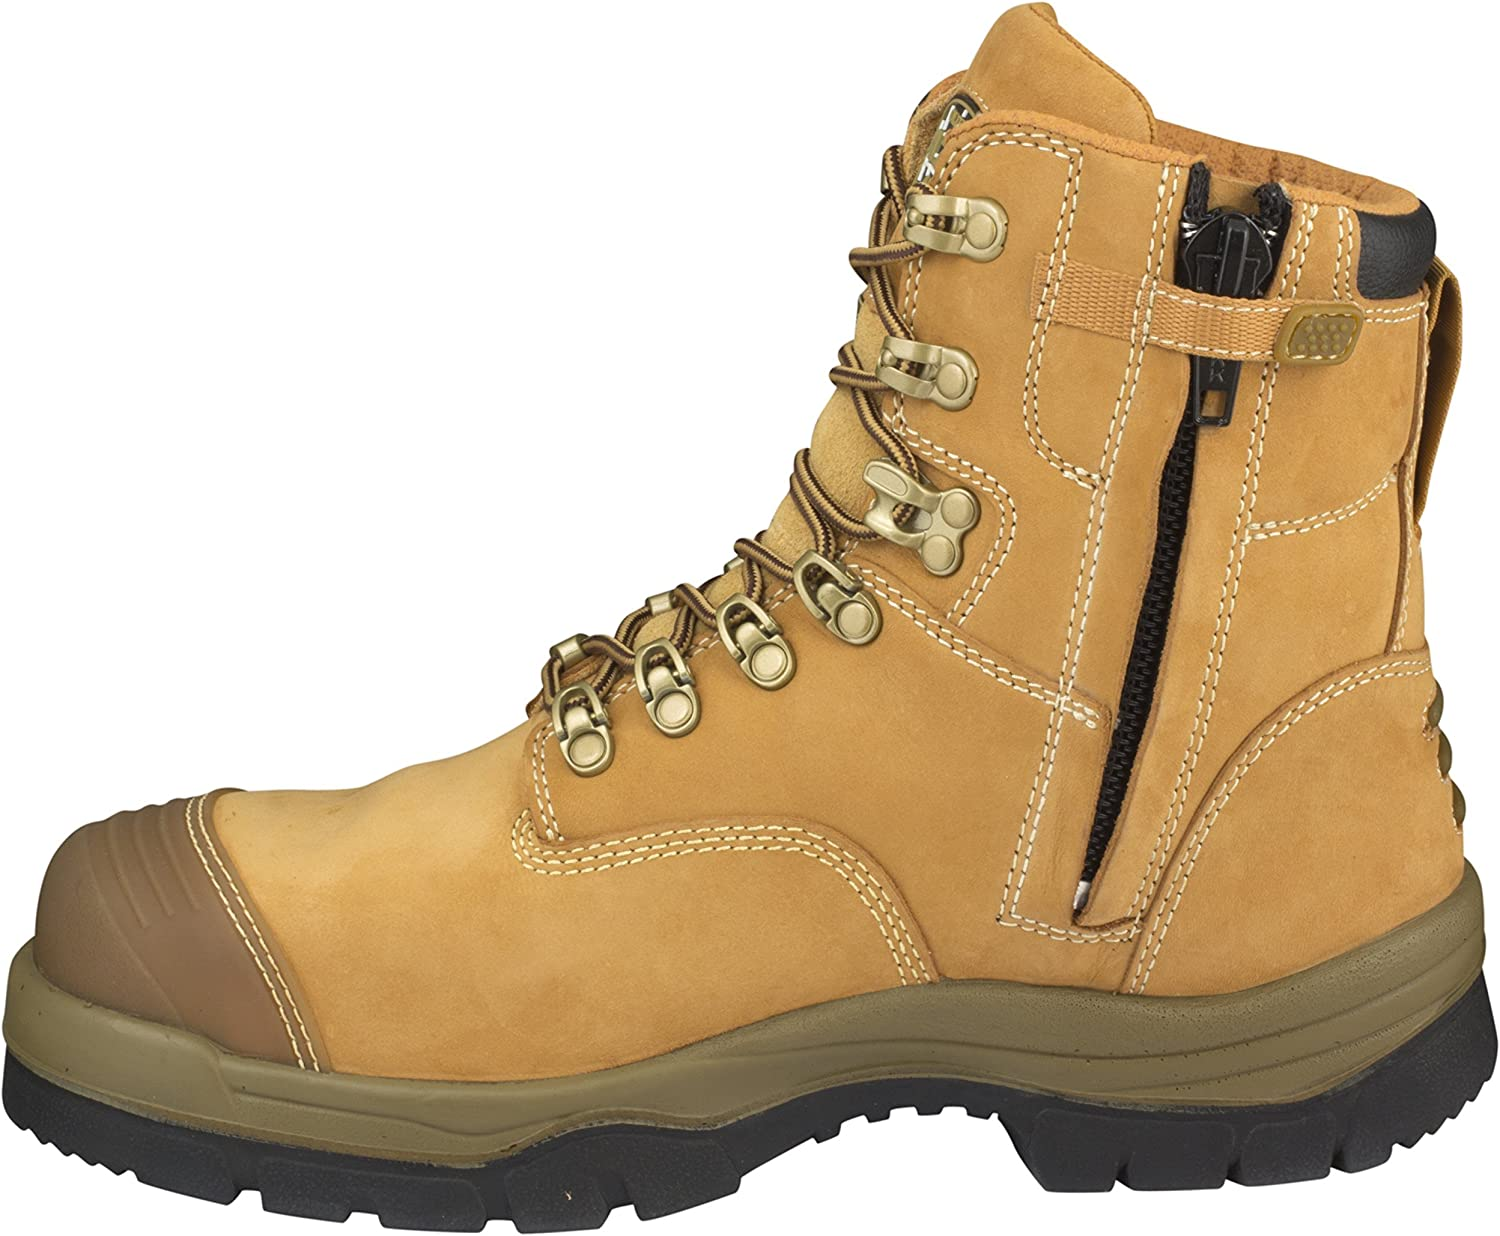 Oliver ATS Mens Work Boots Safety Steel